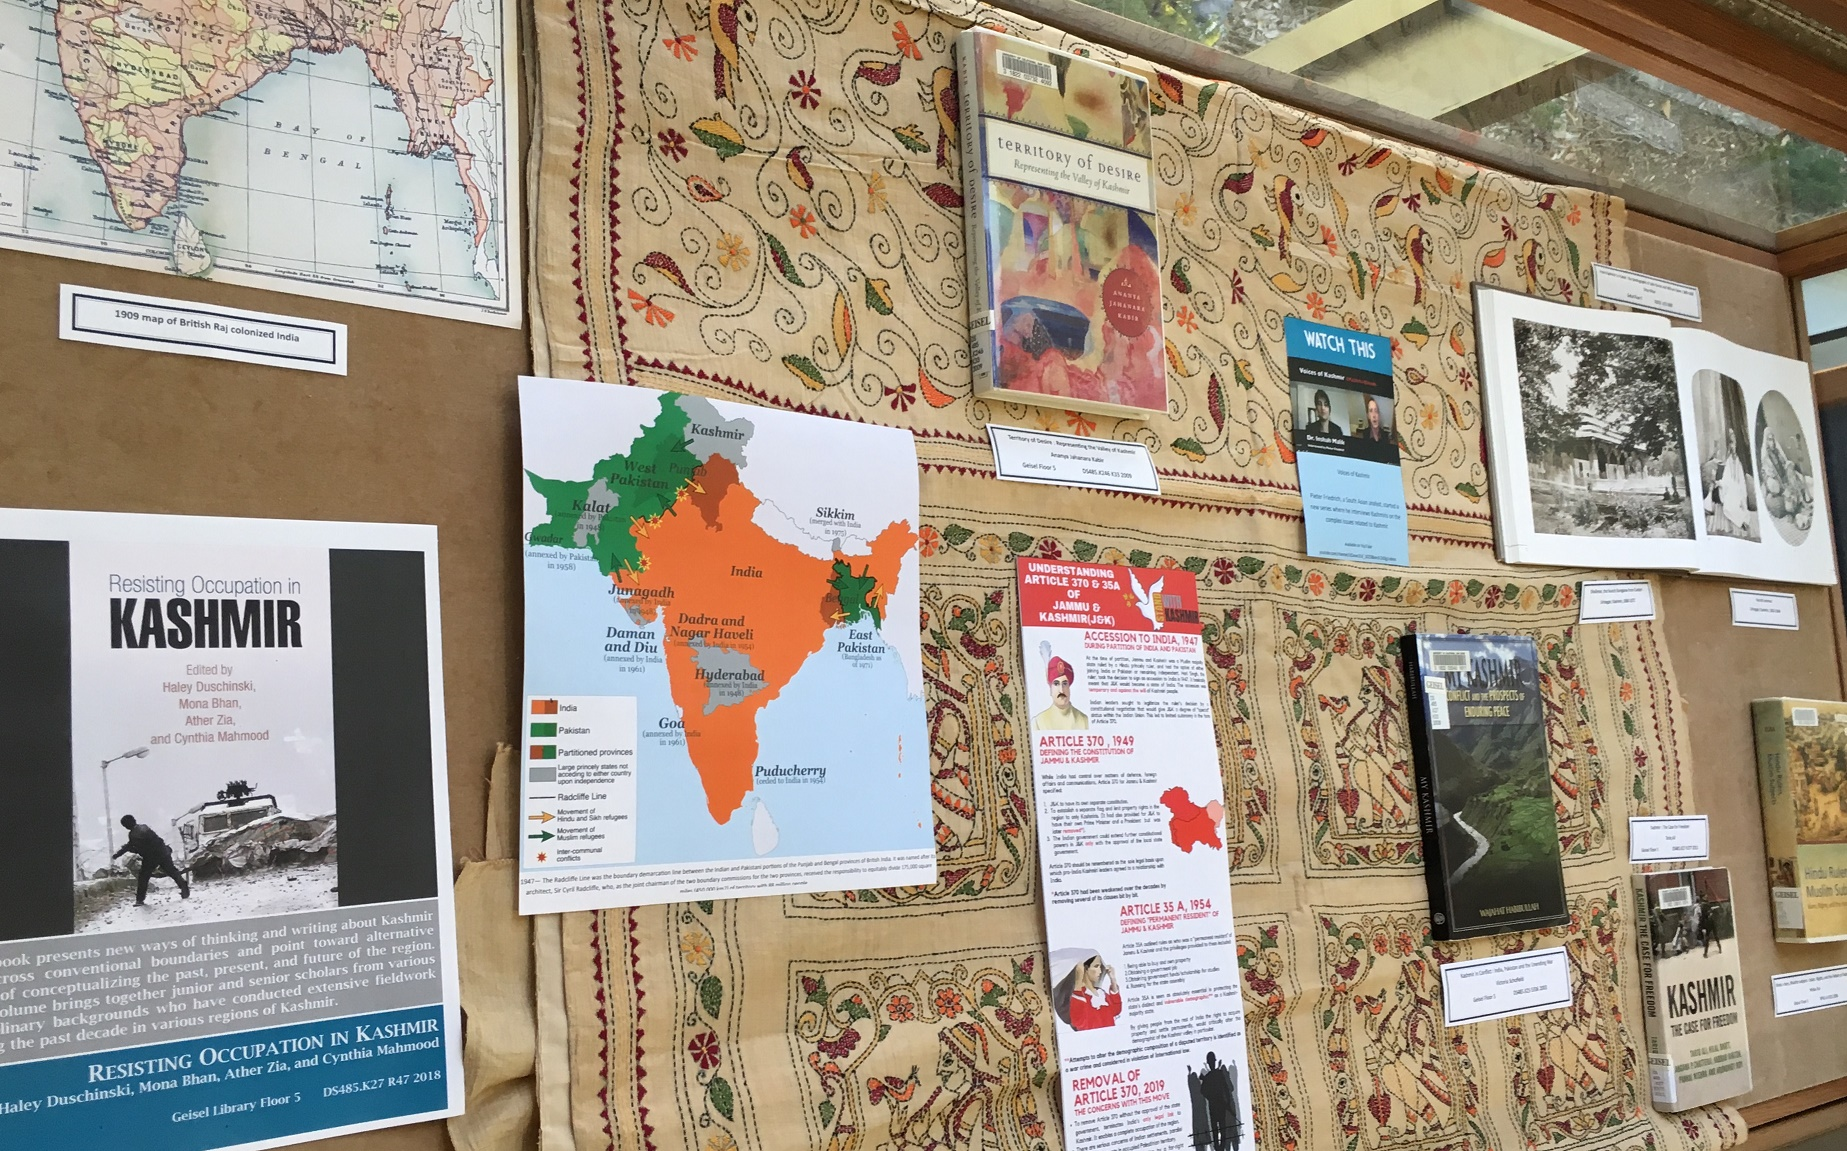 display case with maps and books related to india and kashmir